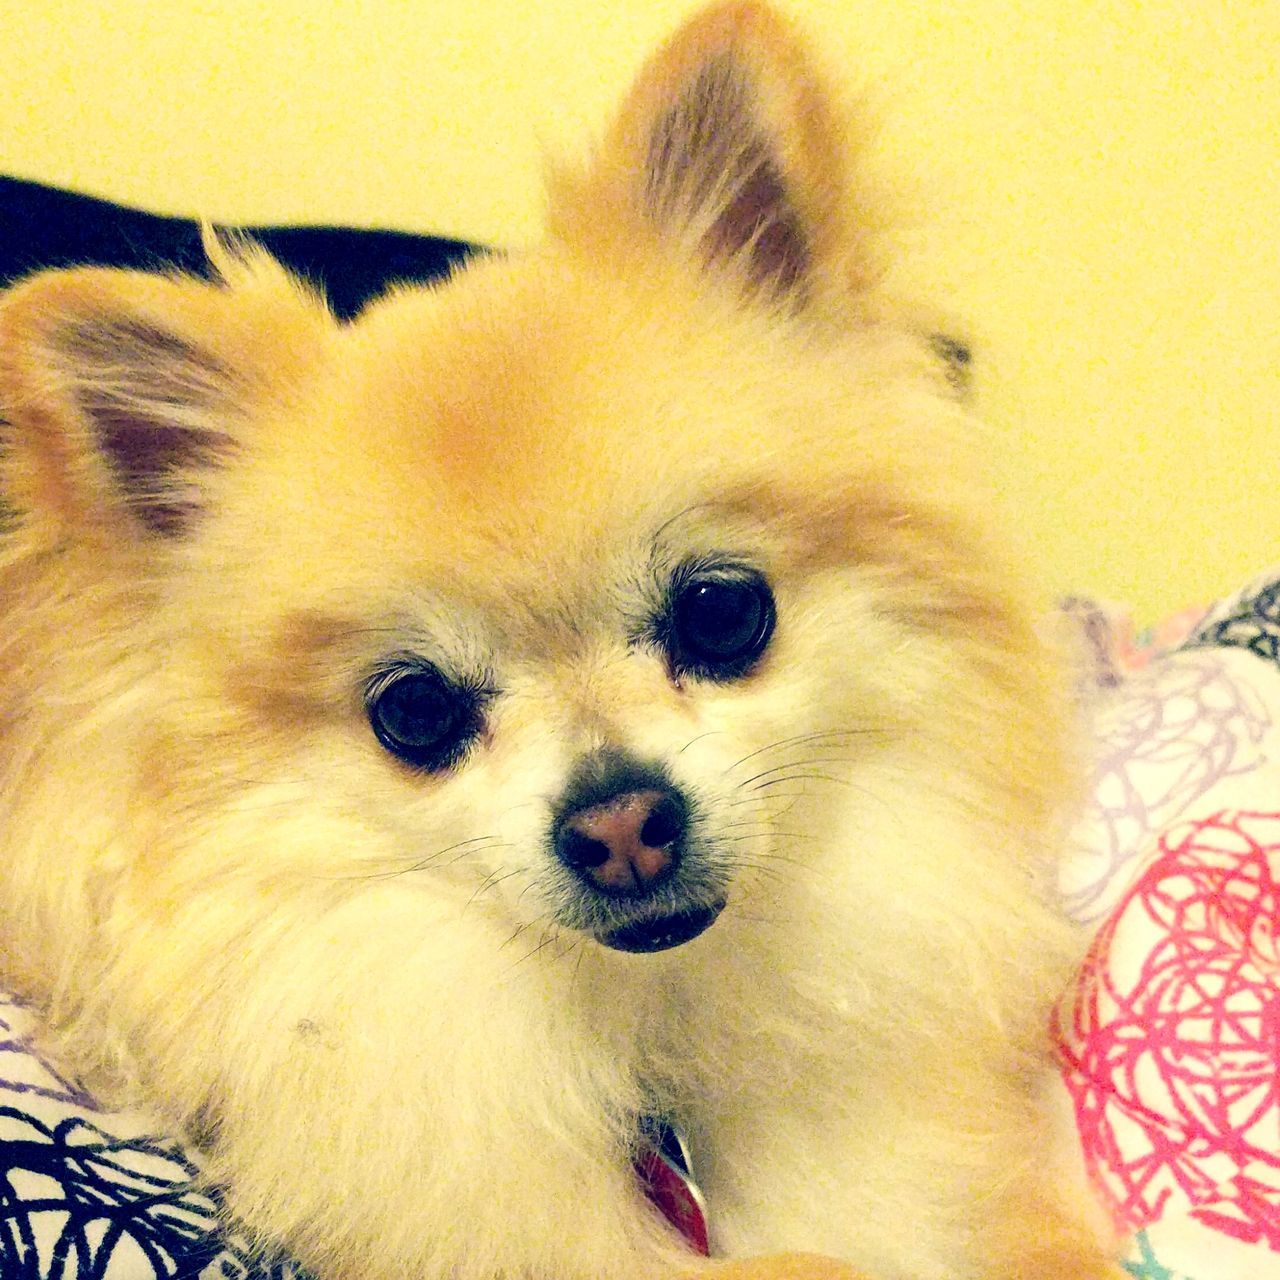 pets, domestic animals, animal themes, mammal, one animal, dog, pomeranian, looking at camera, indoors, portrait, close-up, home interior, no people, day